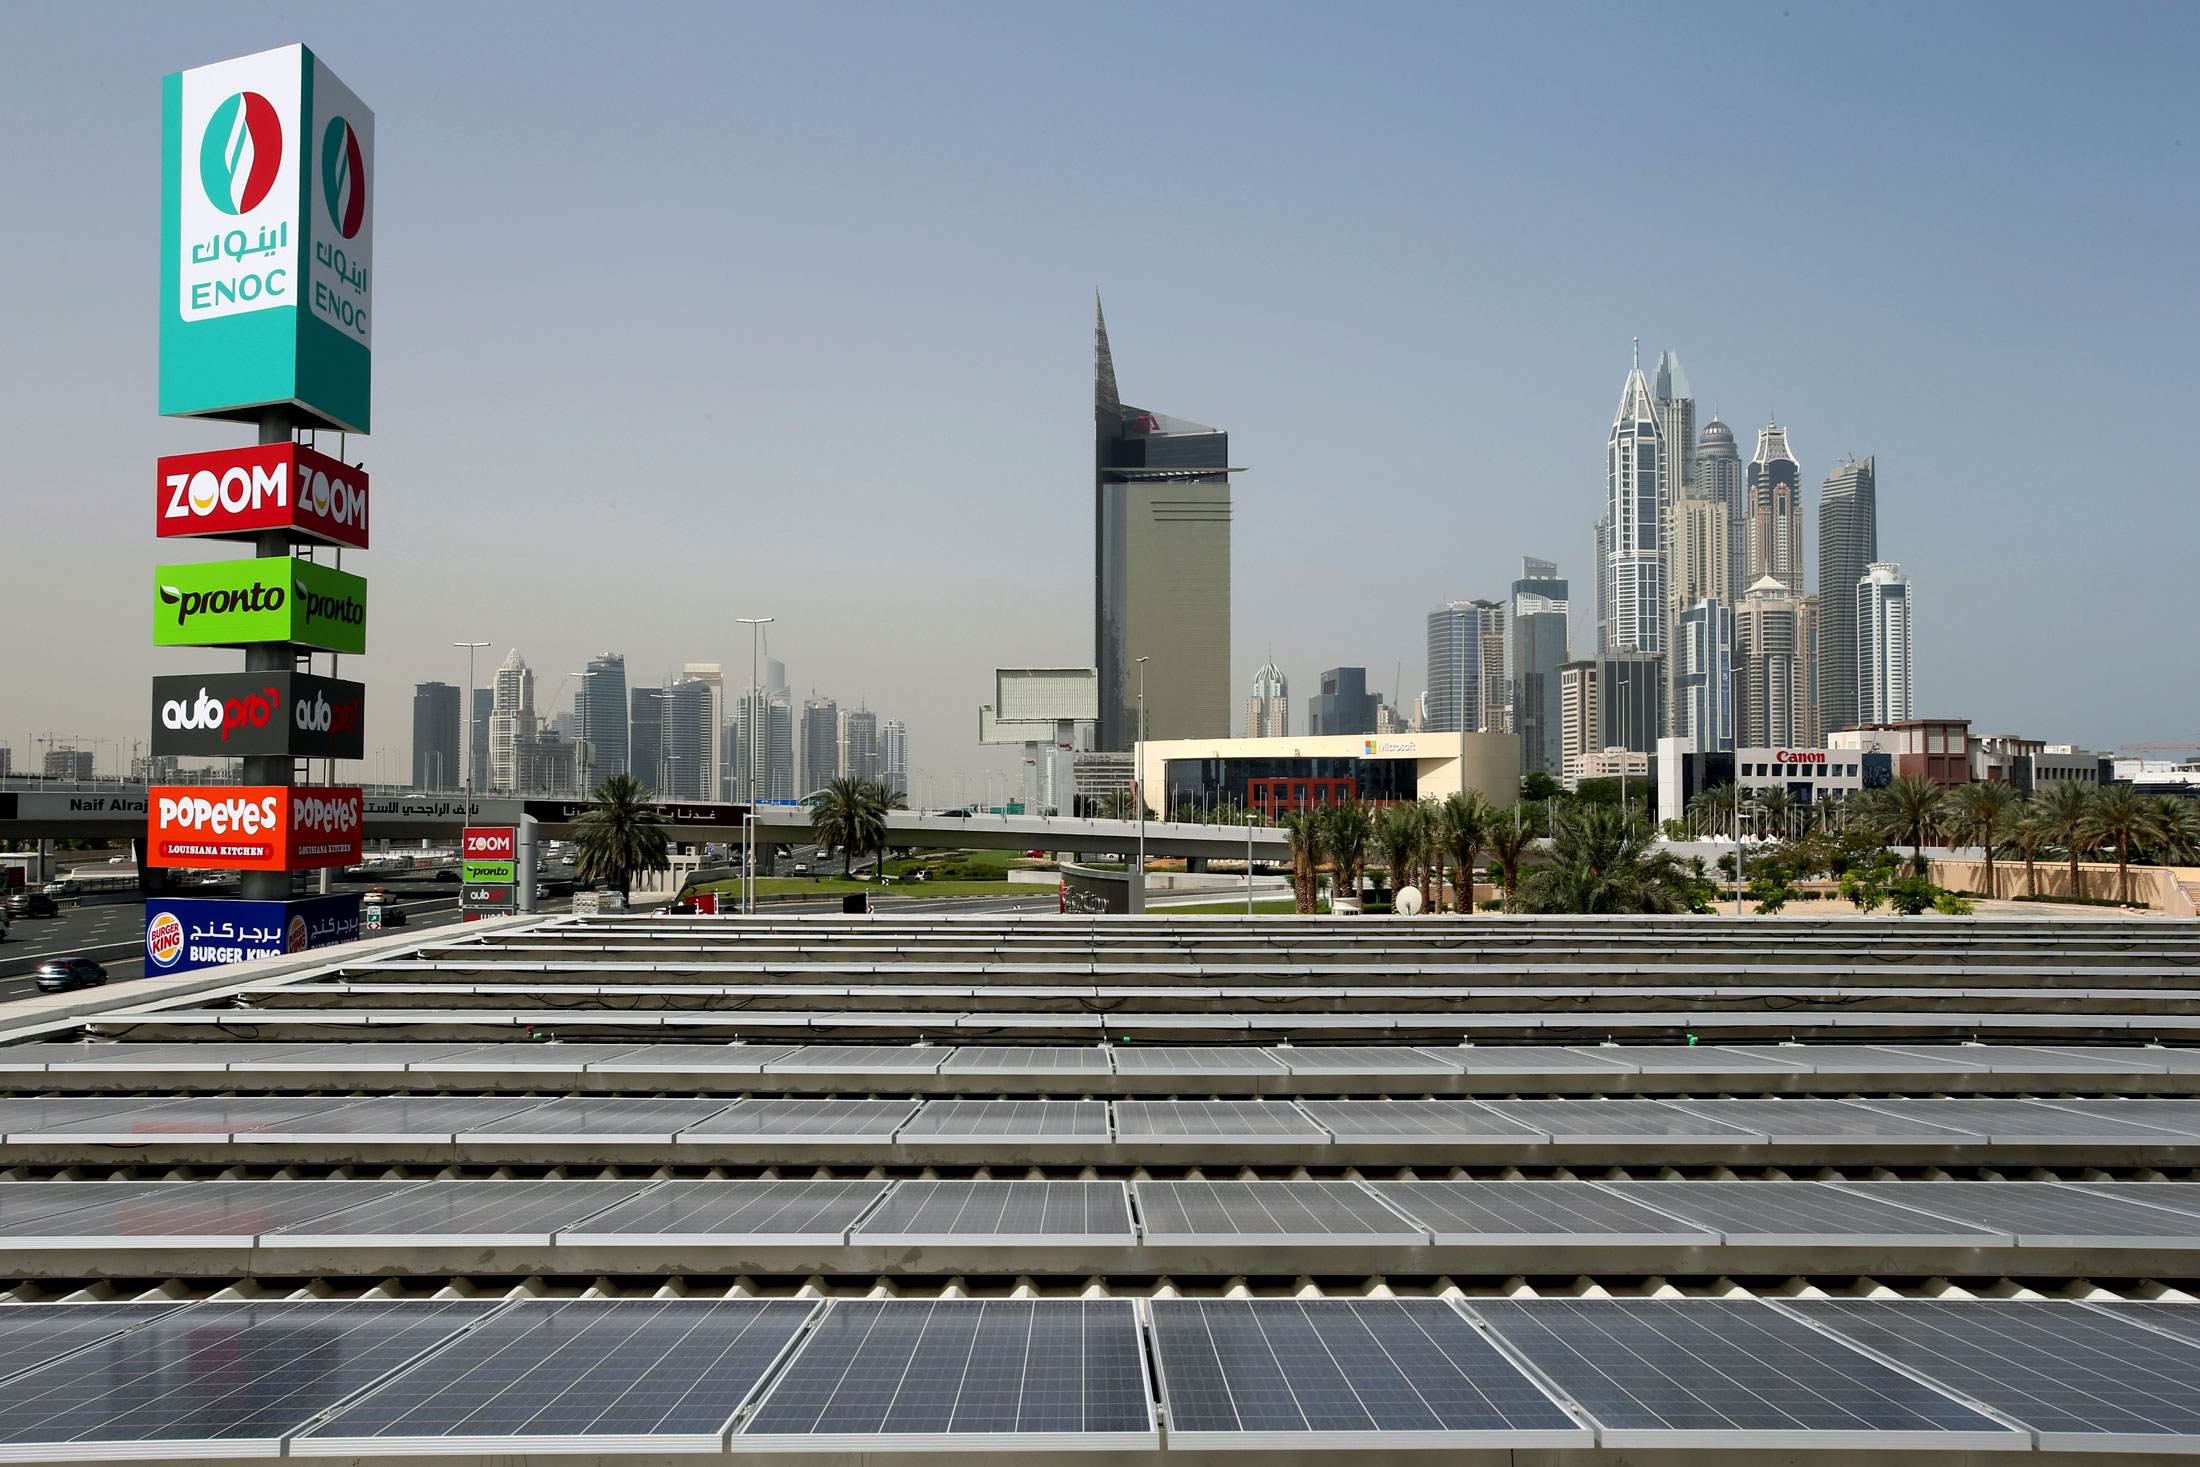 Dubai's solar-powered Emirates National Oil Company gas station.